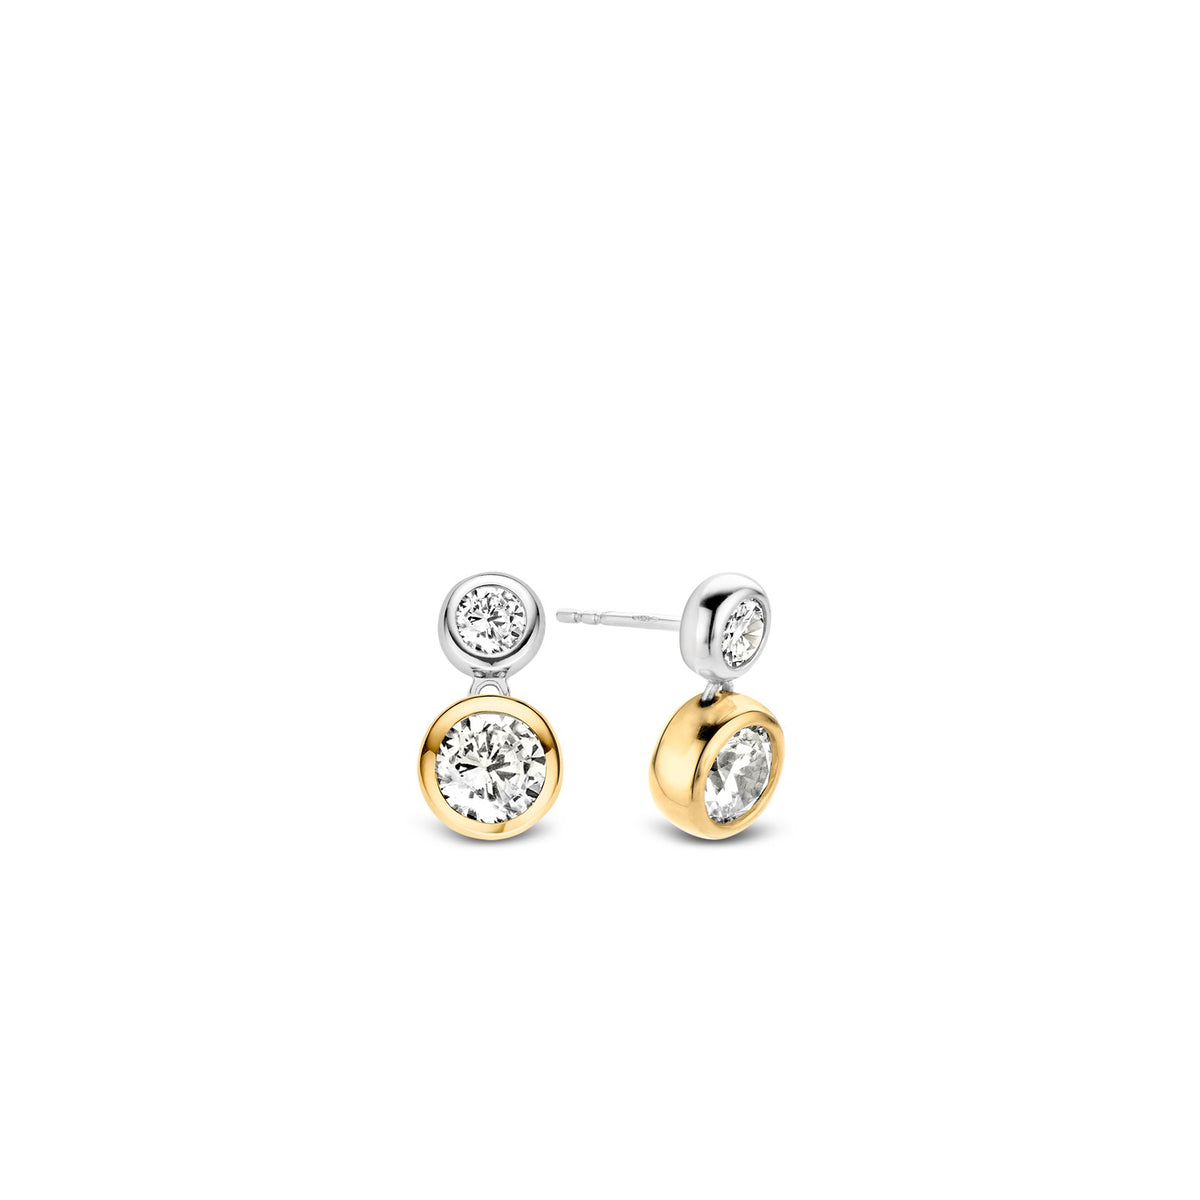 TI SENTO Sterling Silver Two Tone Earrings with Two Bezel Set Cubic Zirconia